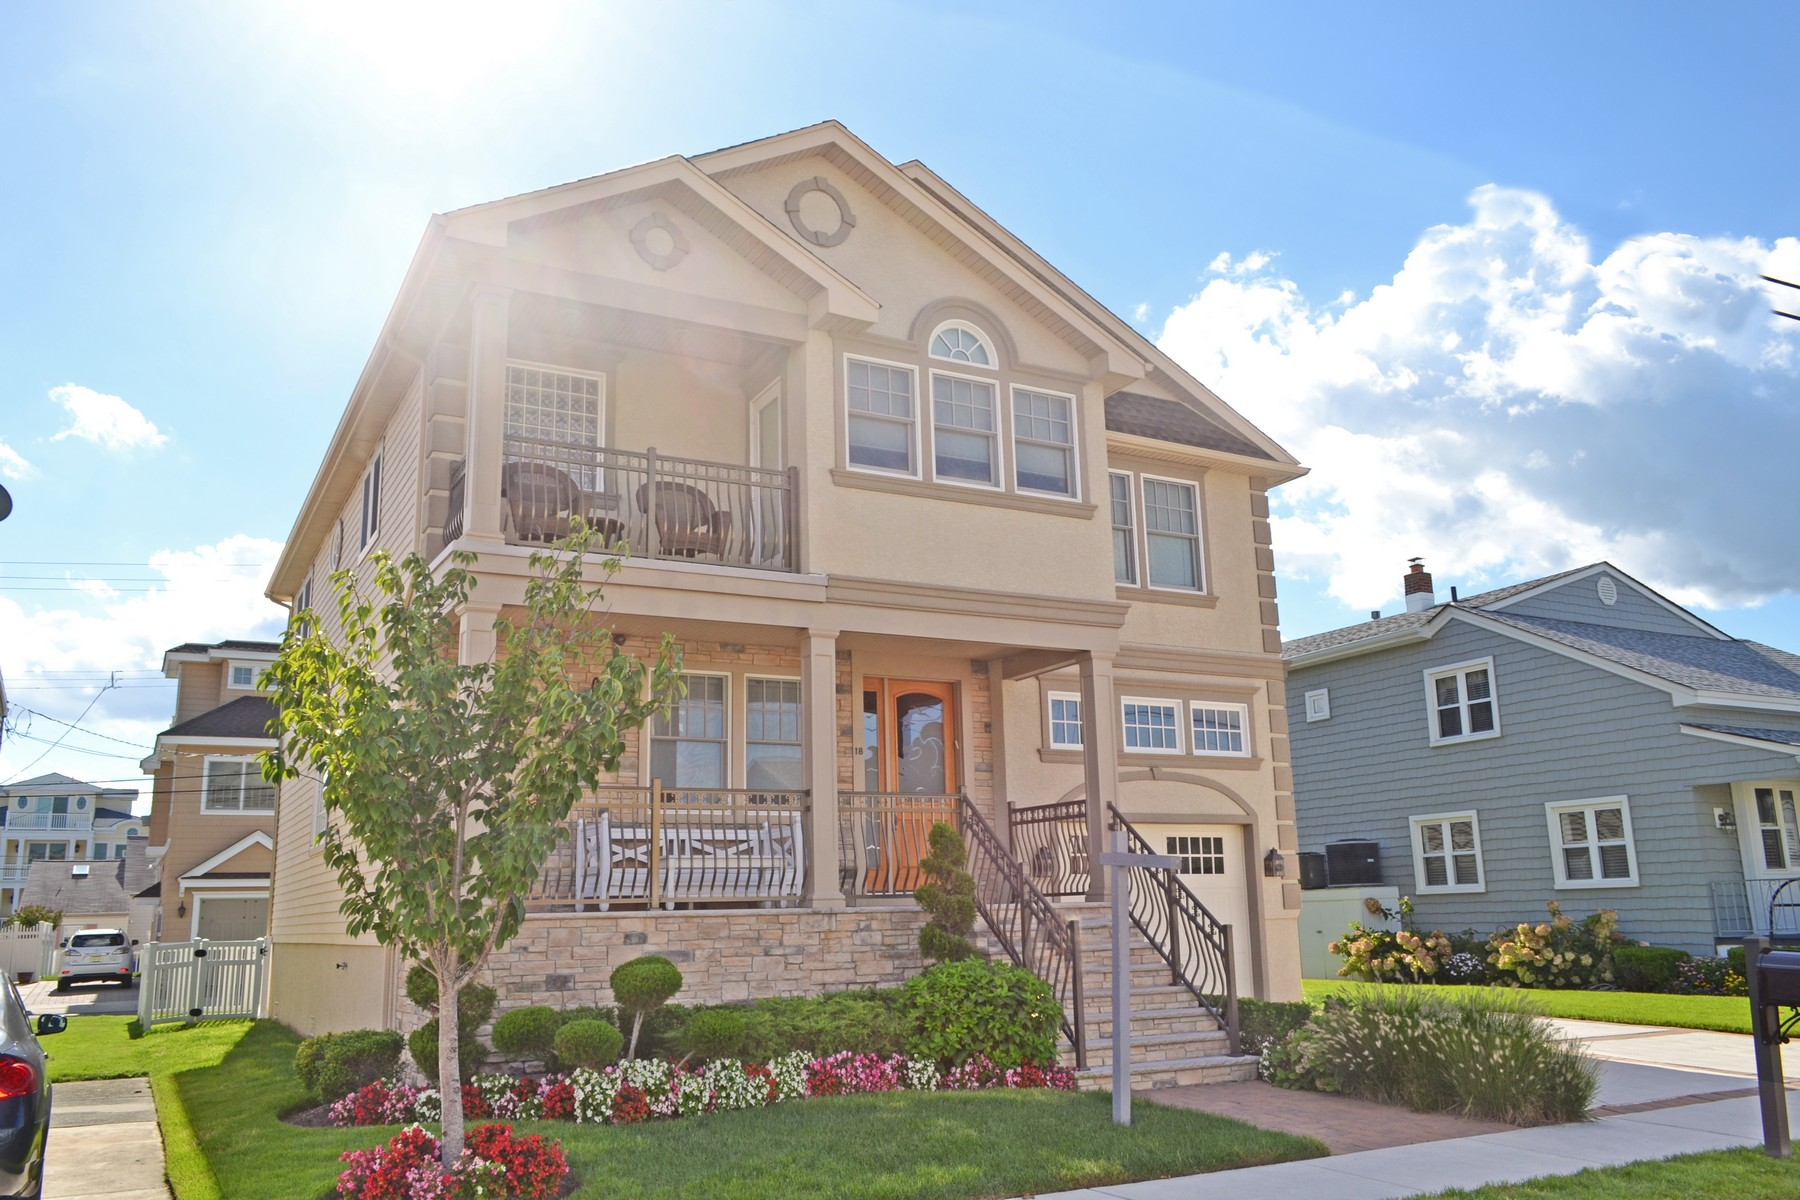 Maison unifamiliale pour l Vente à 18 N 34th Ave Longport, New Jersey 08403 États-Unis